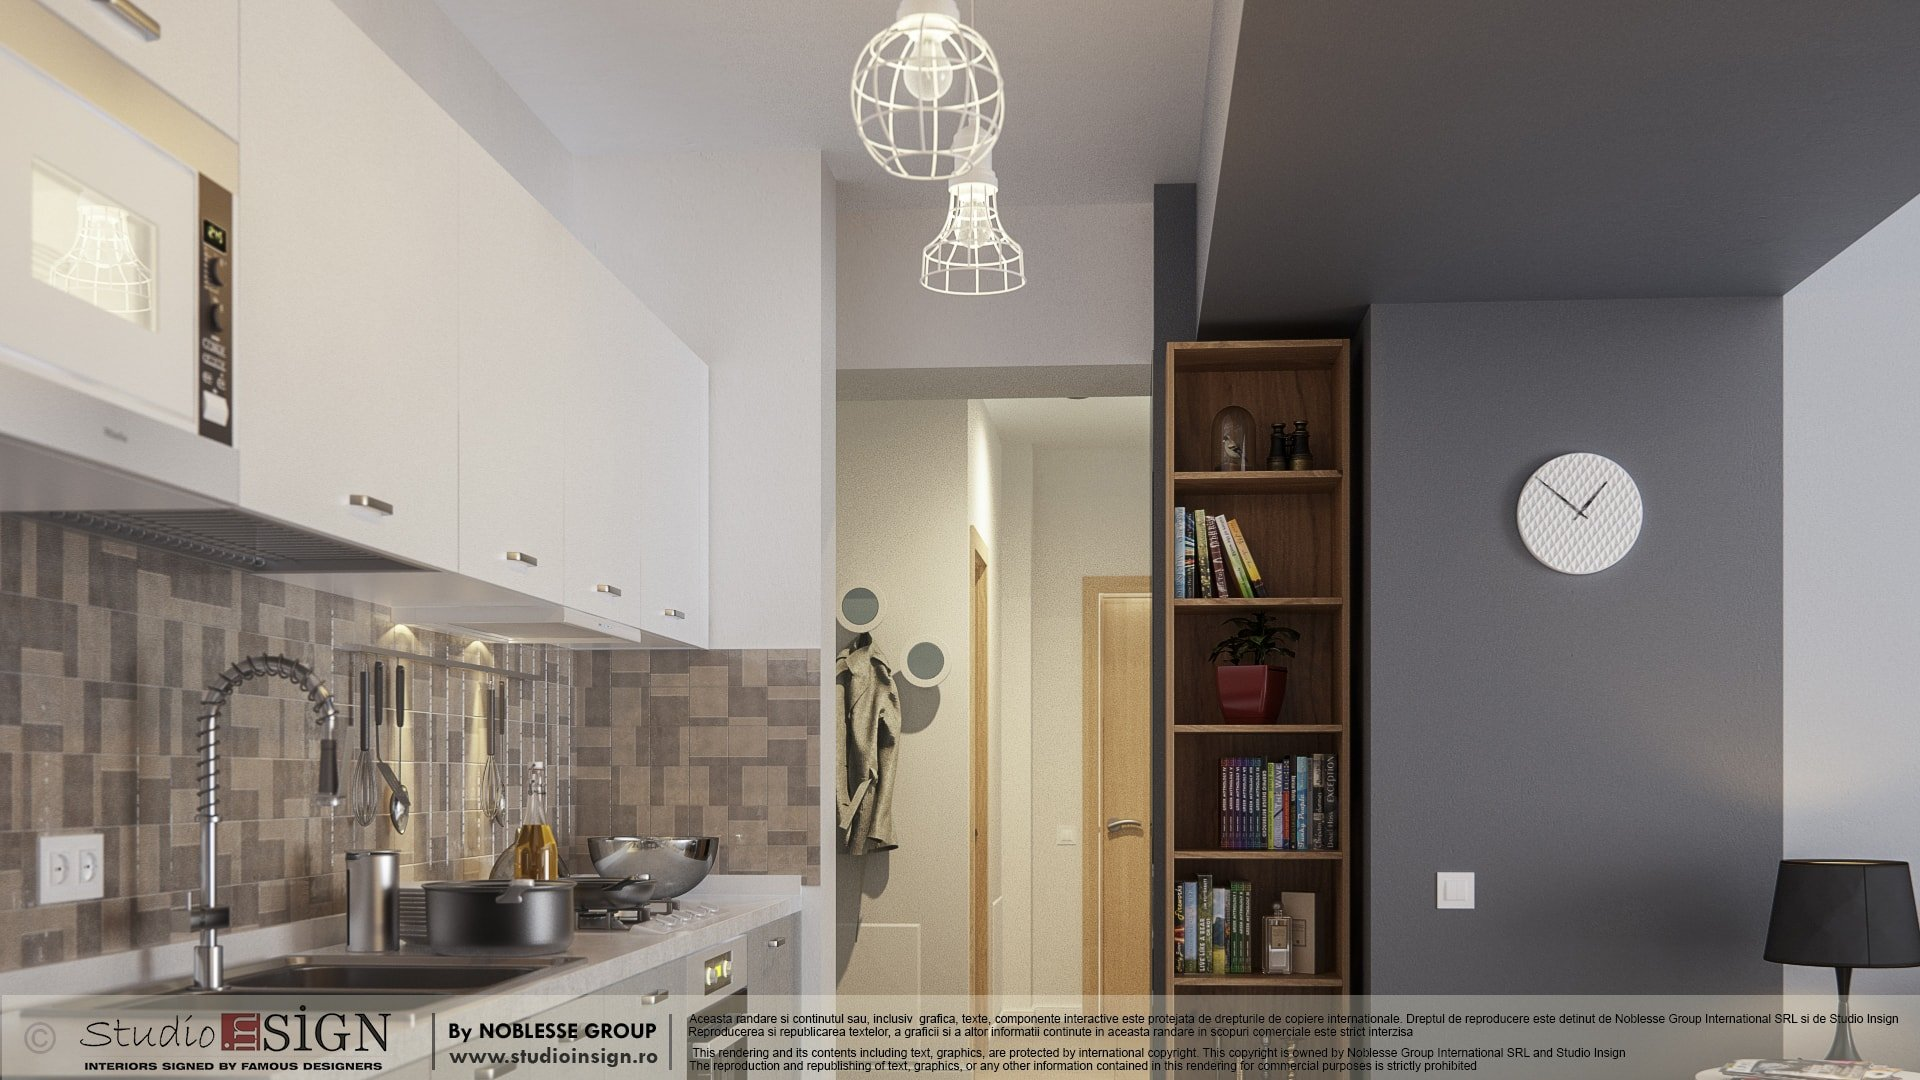 Apartment on splaiul independentei bucharest nordic interior design studio insign - Nordic interior design ...